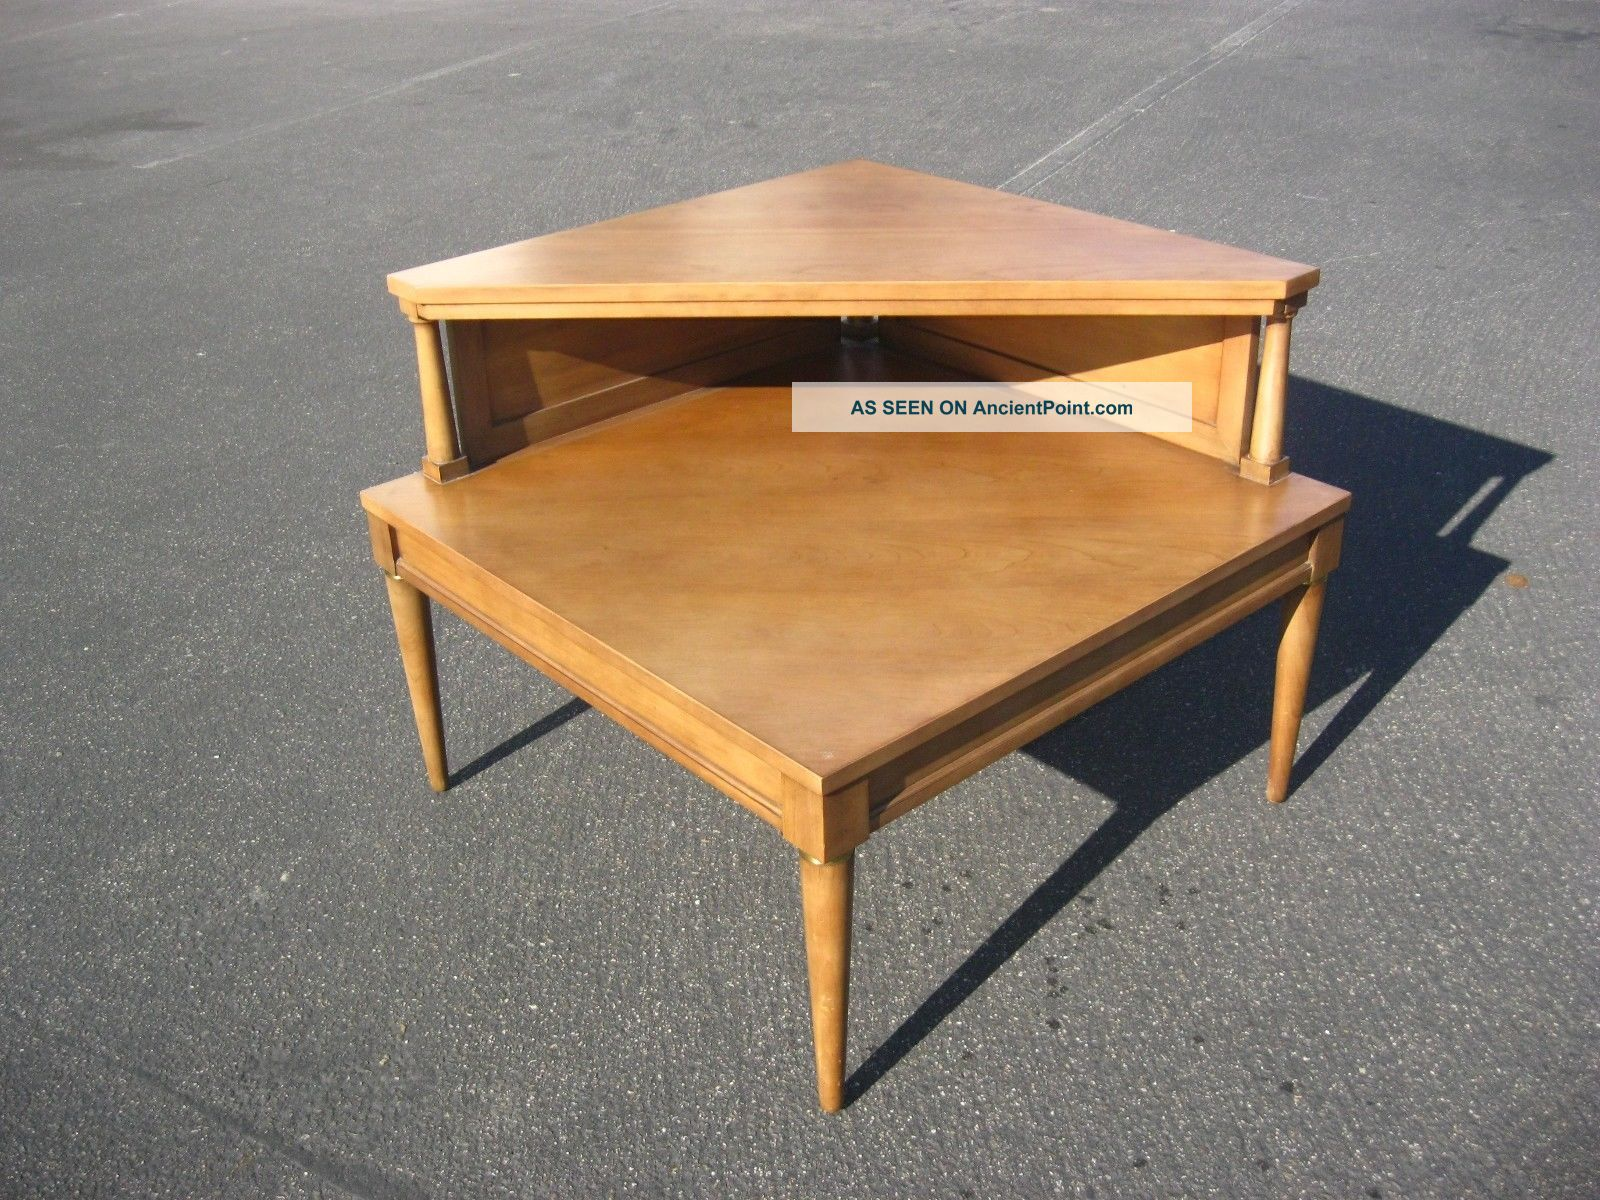 Modern Corner Table crowdbuild for